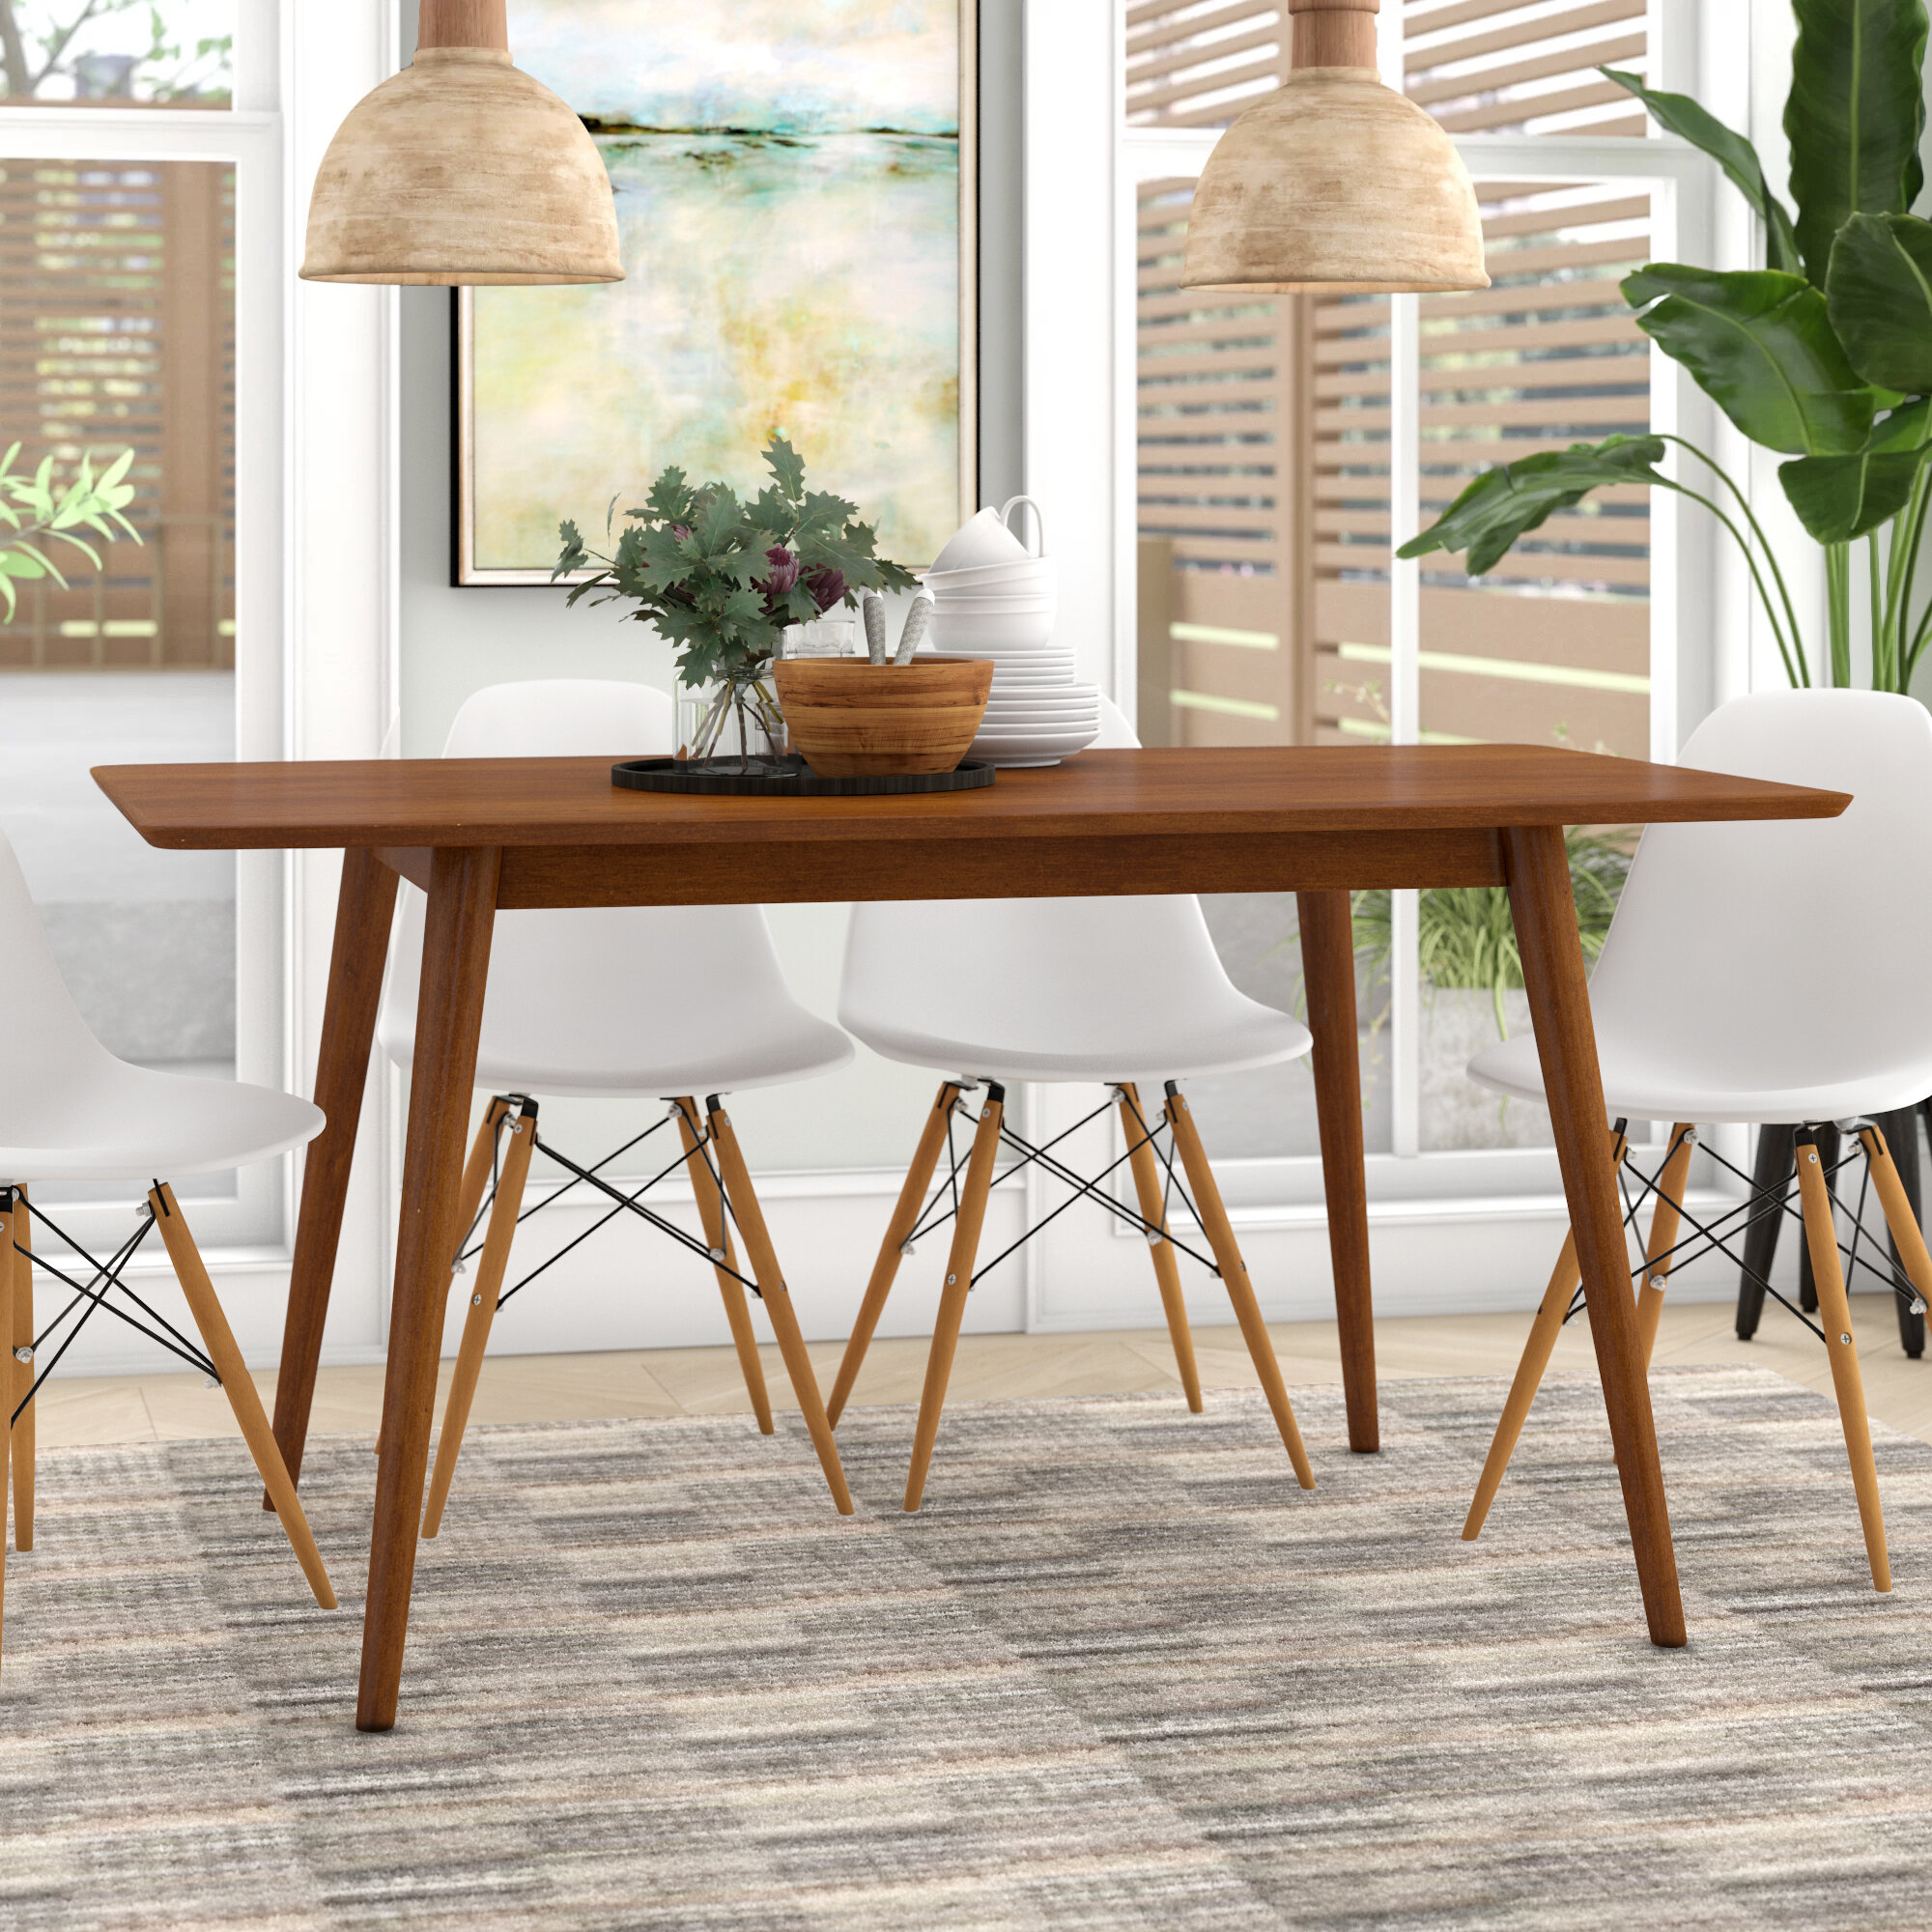 Picture of: Mid Century Modern Dining Tables Ideas On Foter